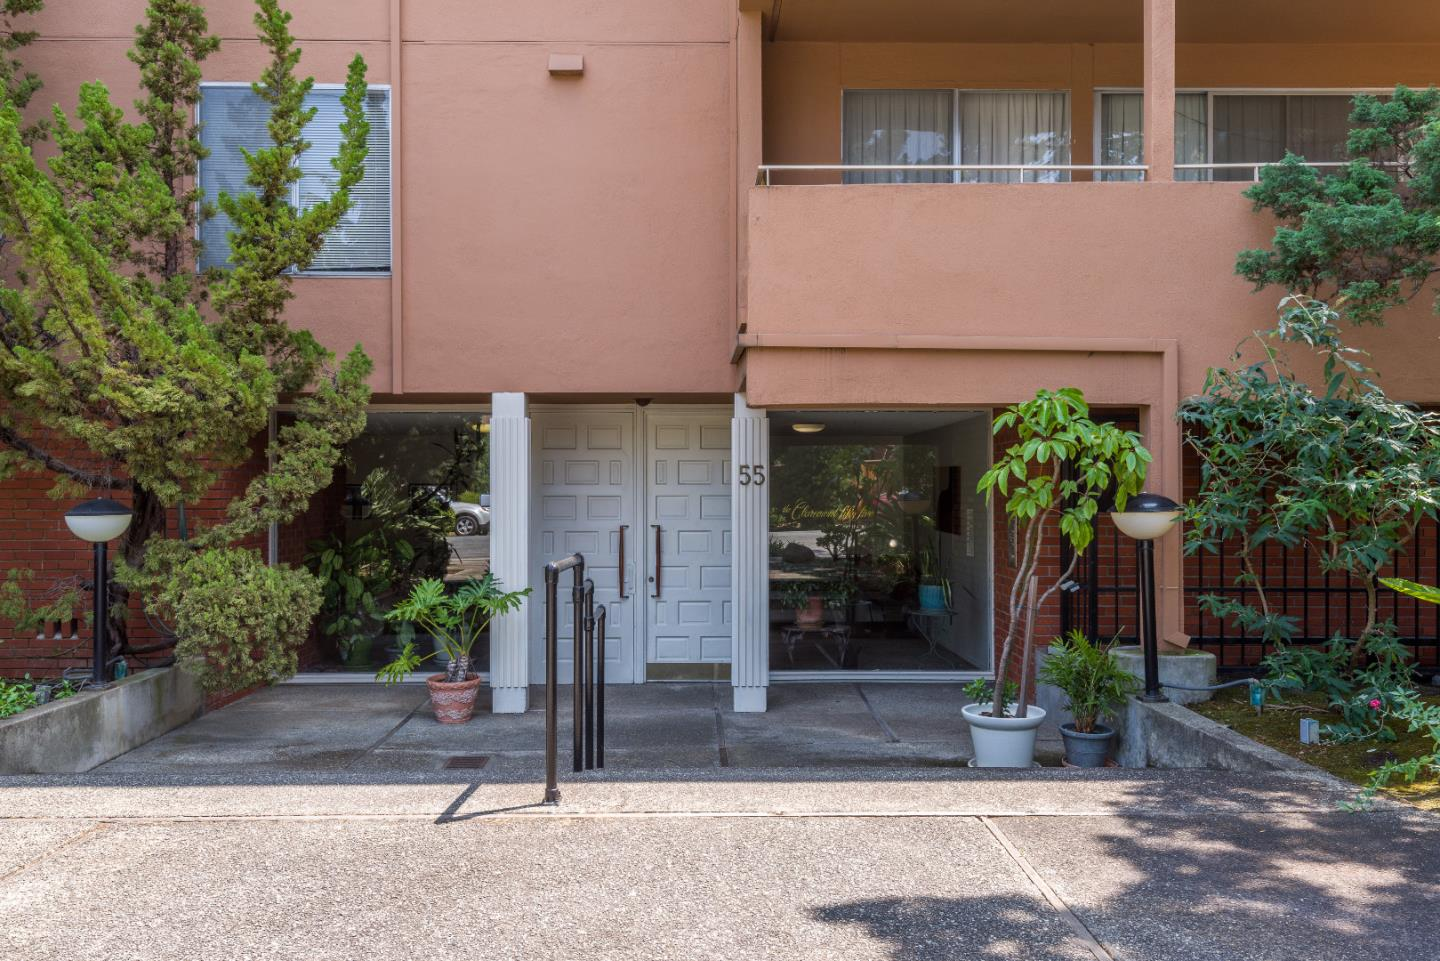 55 Claremont Avenue Unit 302 Redwood City, CA 94062 - MLS #: ML81721434